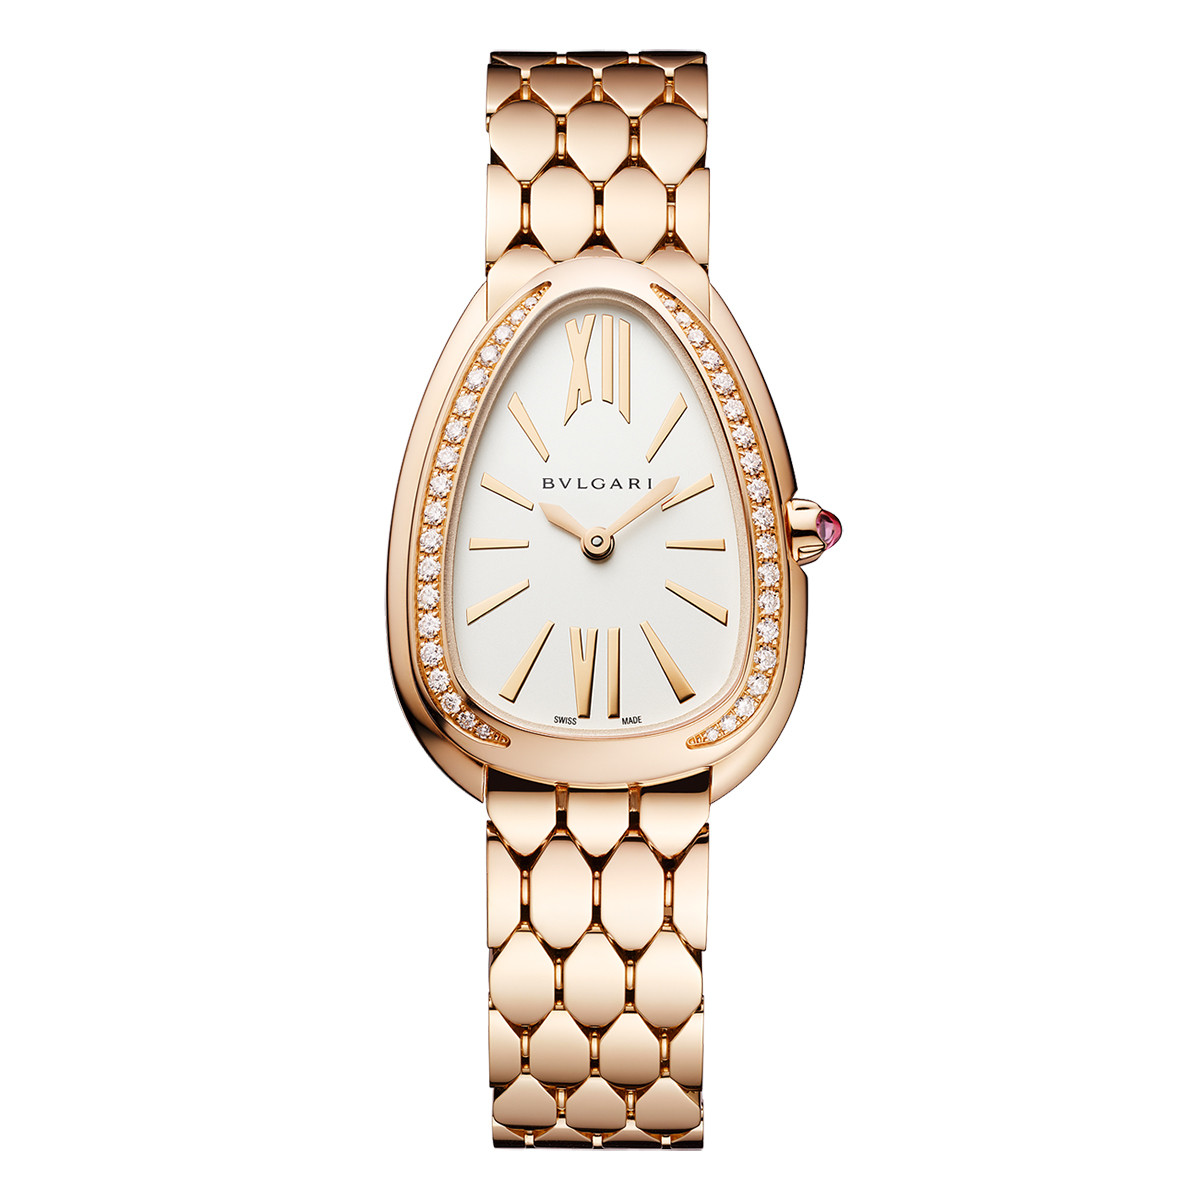 Serpenti Seduttori Rose Gold & Diamonds (103146)